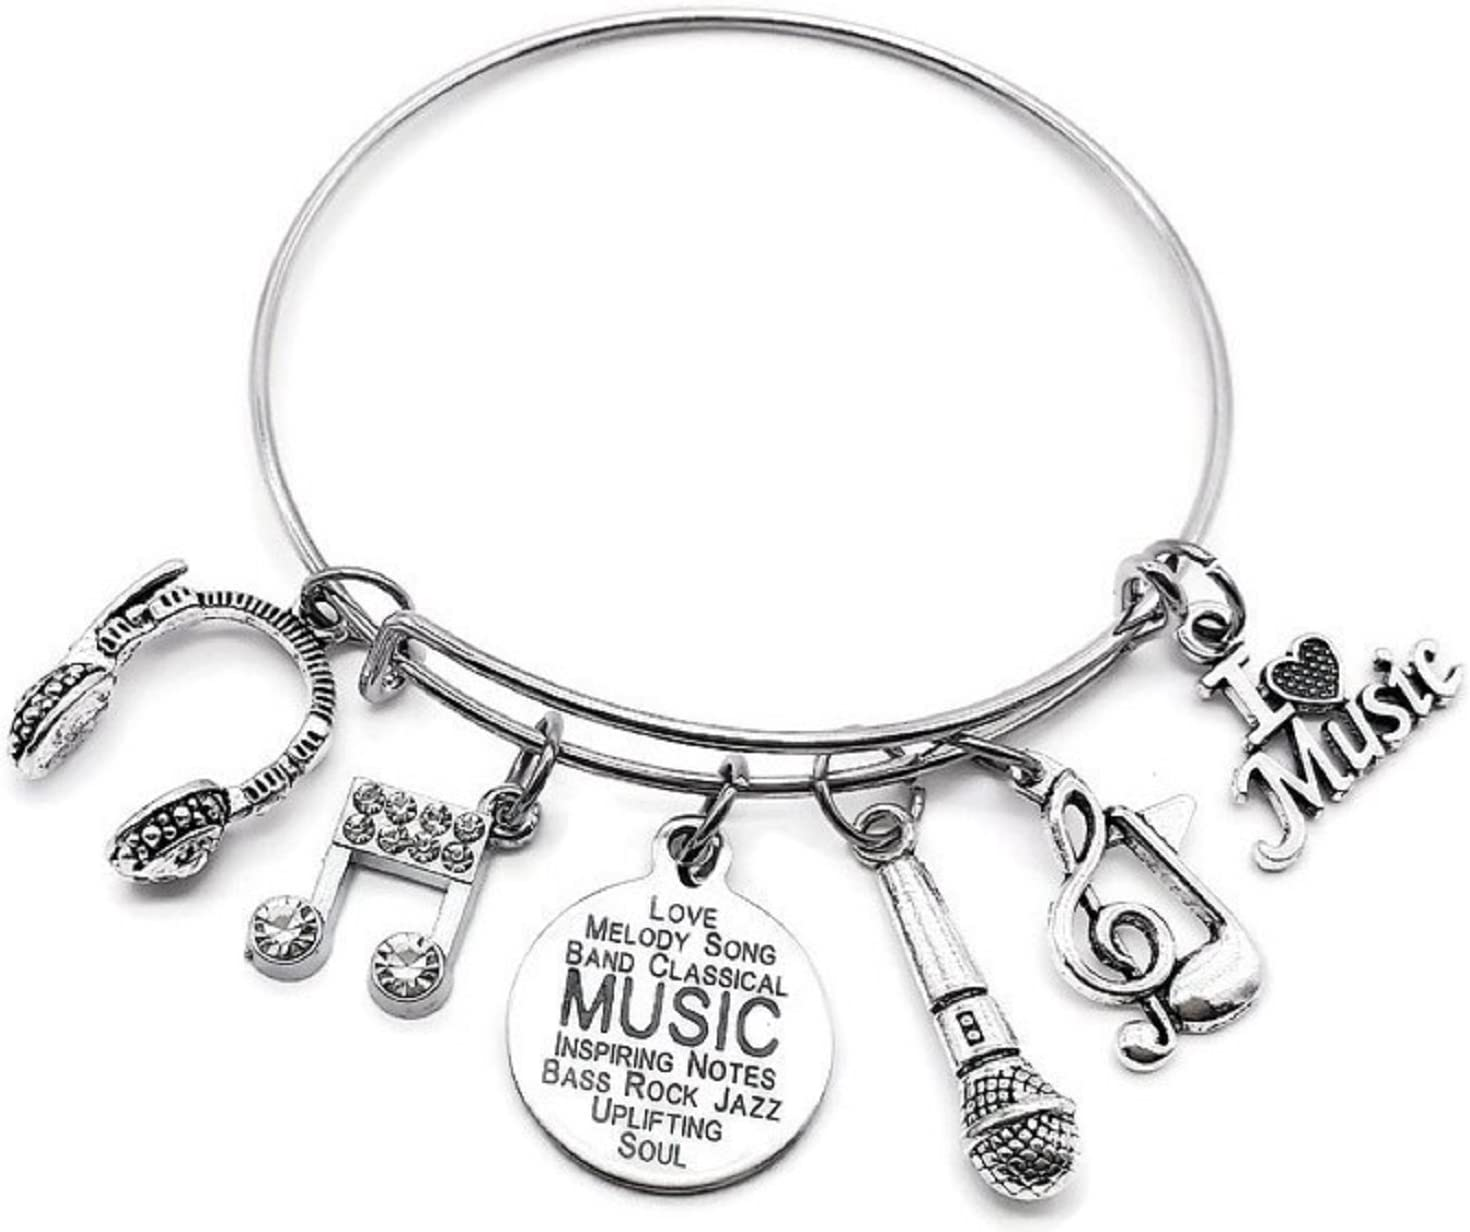 Music Fashionable Bracelet Musical Jewelry Note Headphone Max 40% OFF